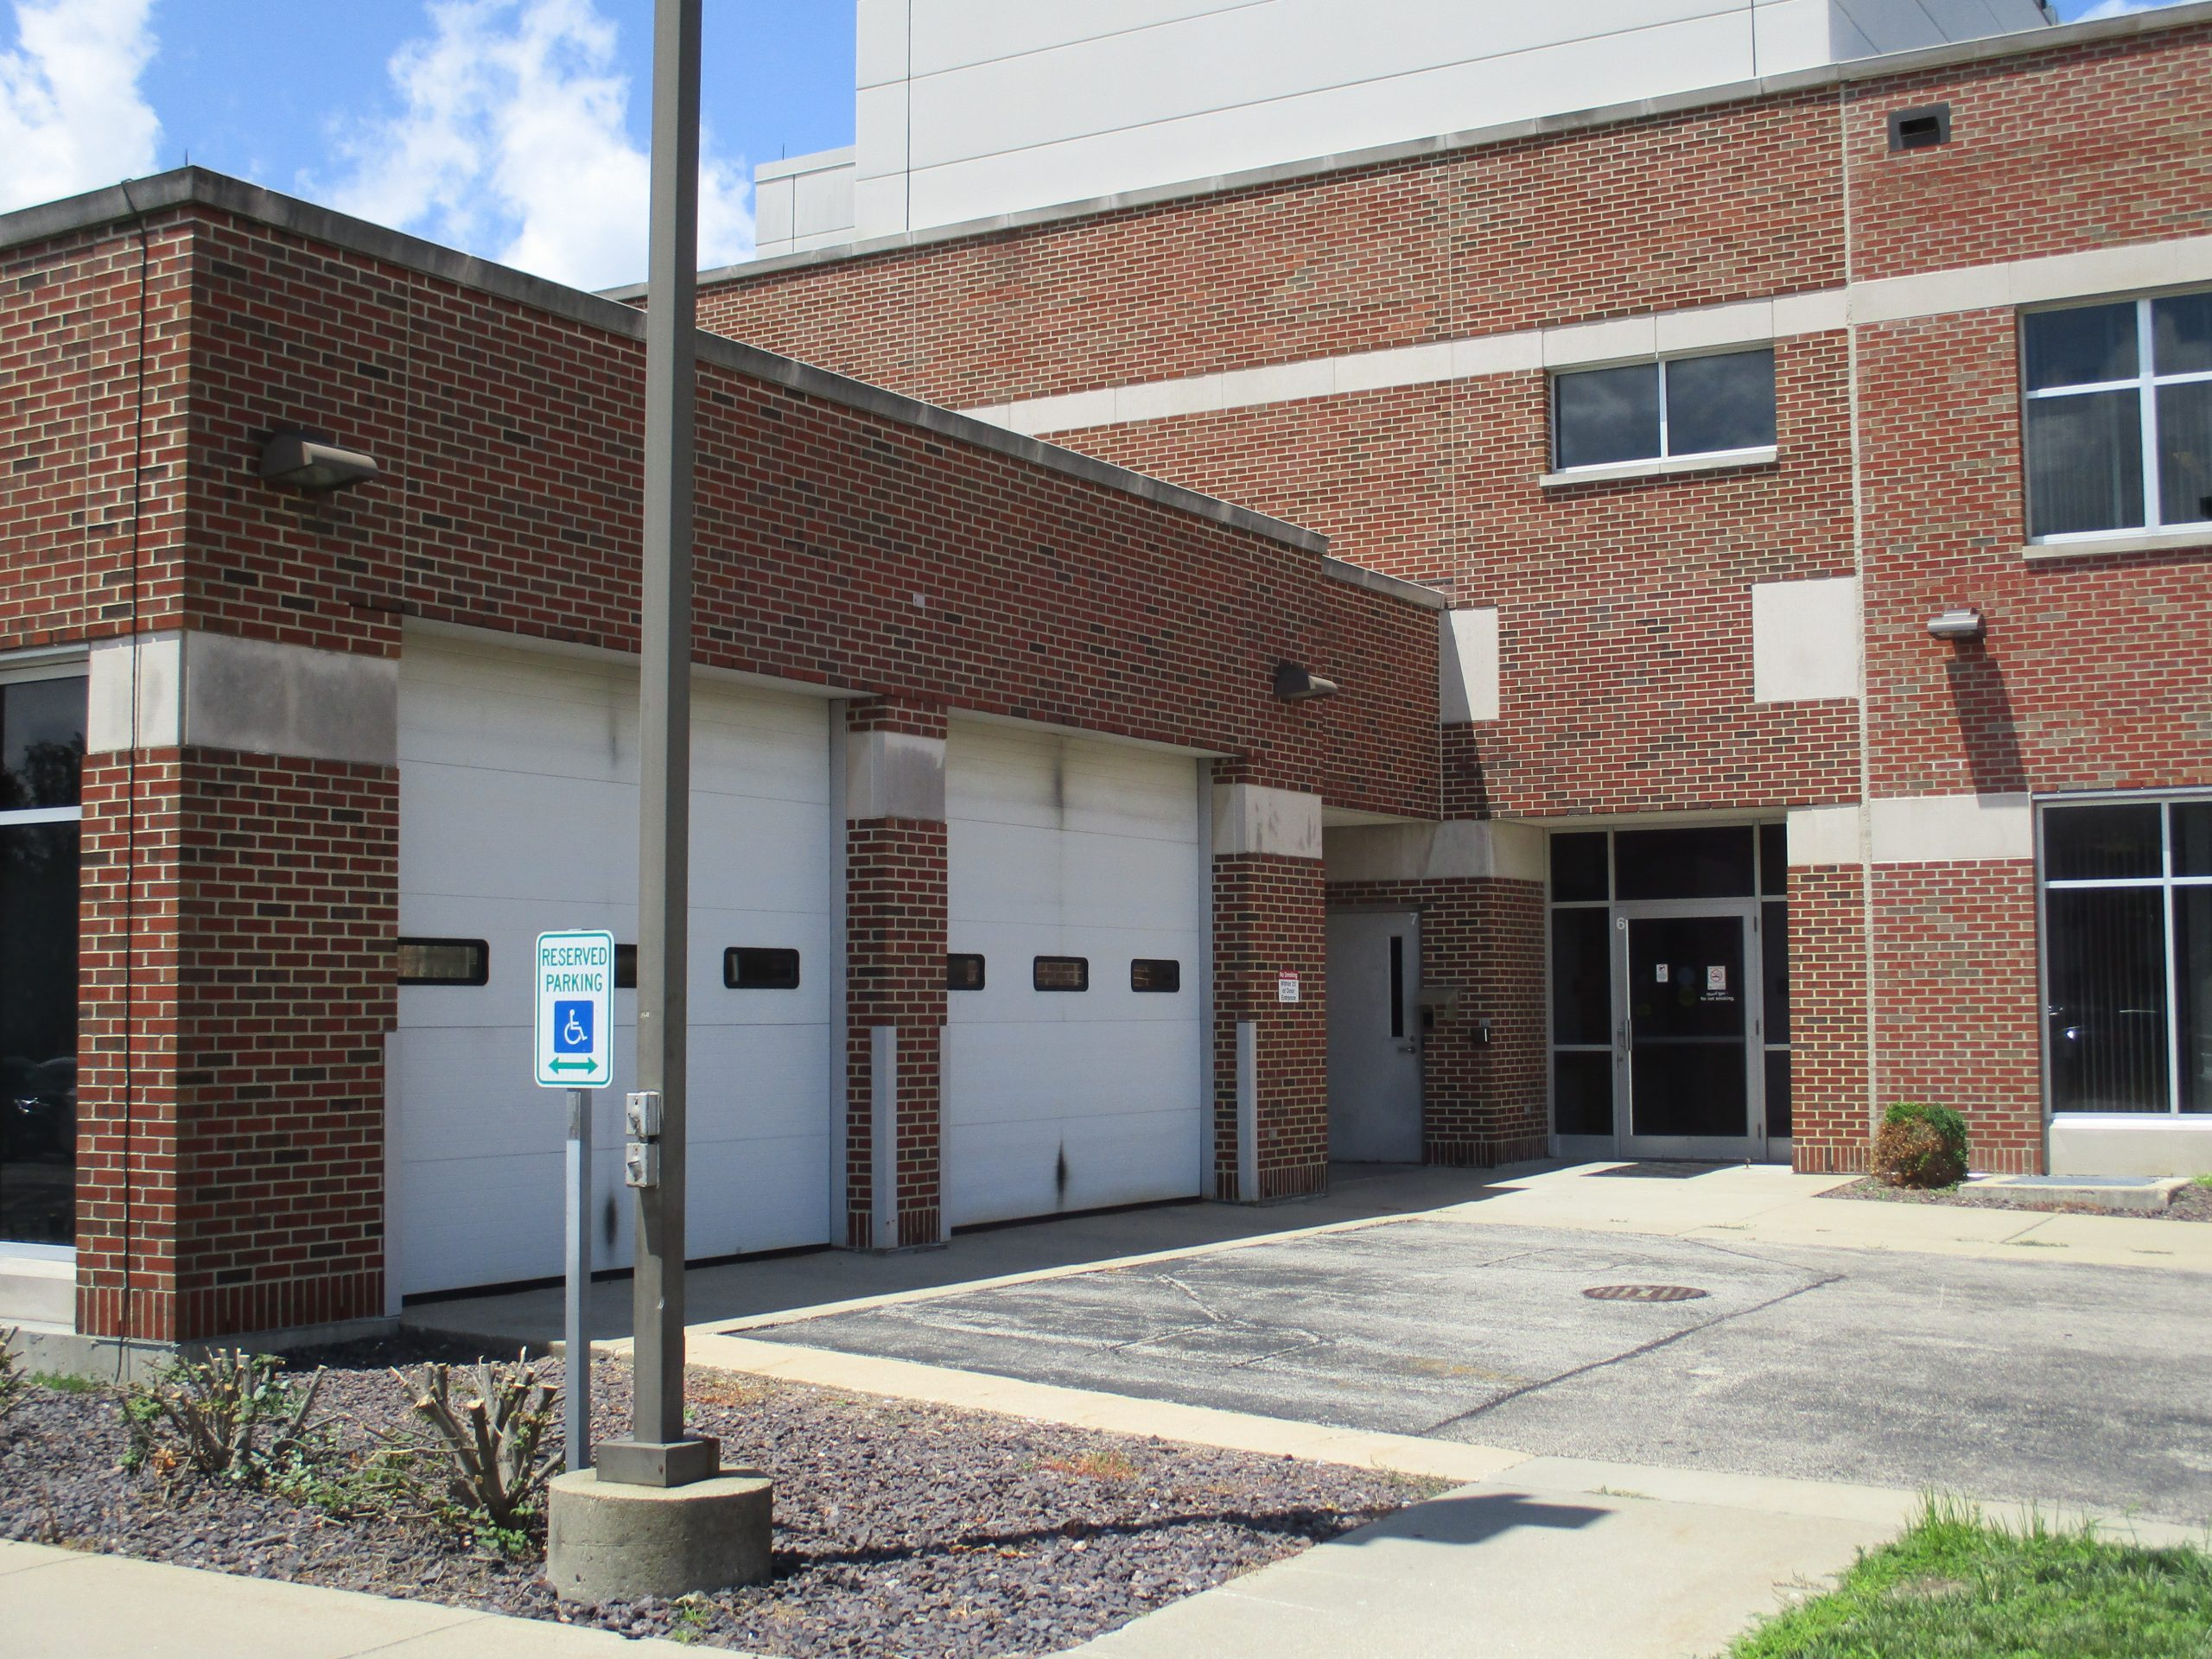 Emergency department entrance to be temporarily relocated at HSHS St. Anthony's Memorial Hospital, starting July 9